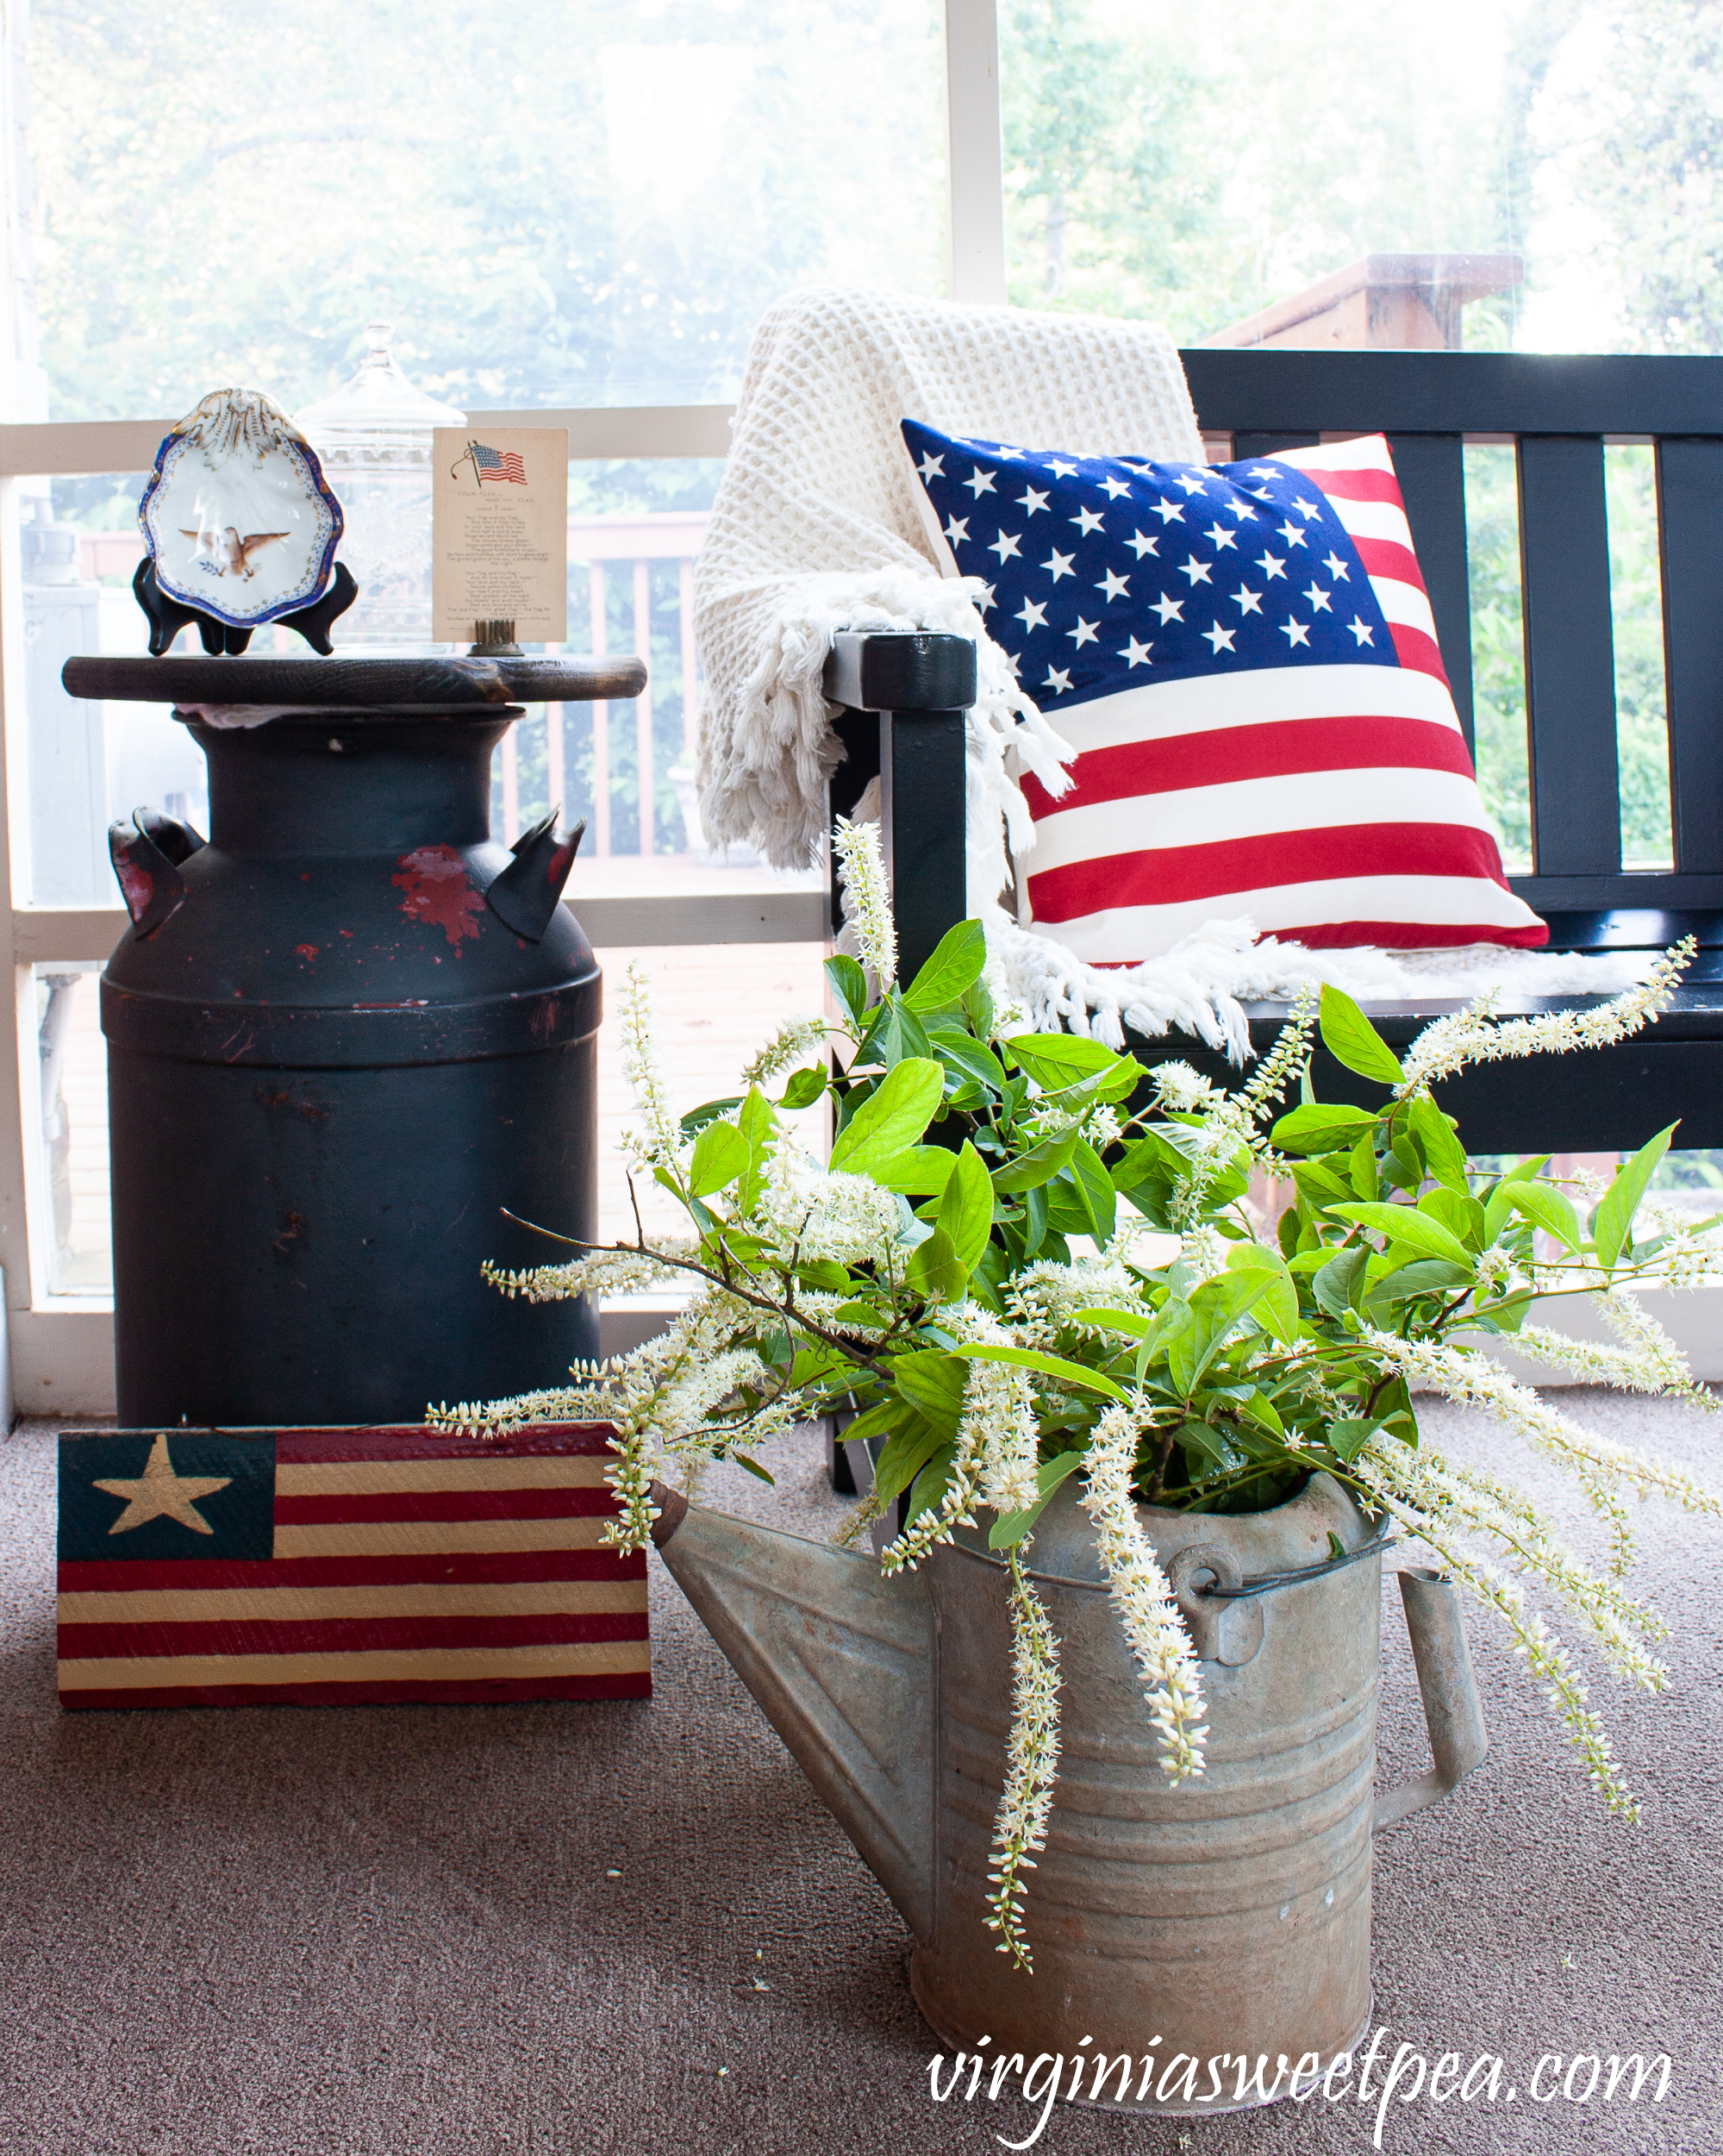 Patriotic porch decor including American flag pillows, a flag sign, a vintage milk can made into a table, and a vintage watering can.